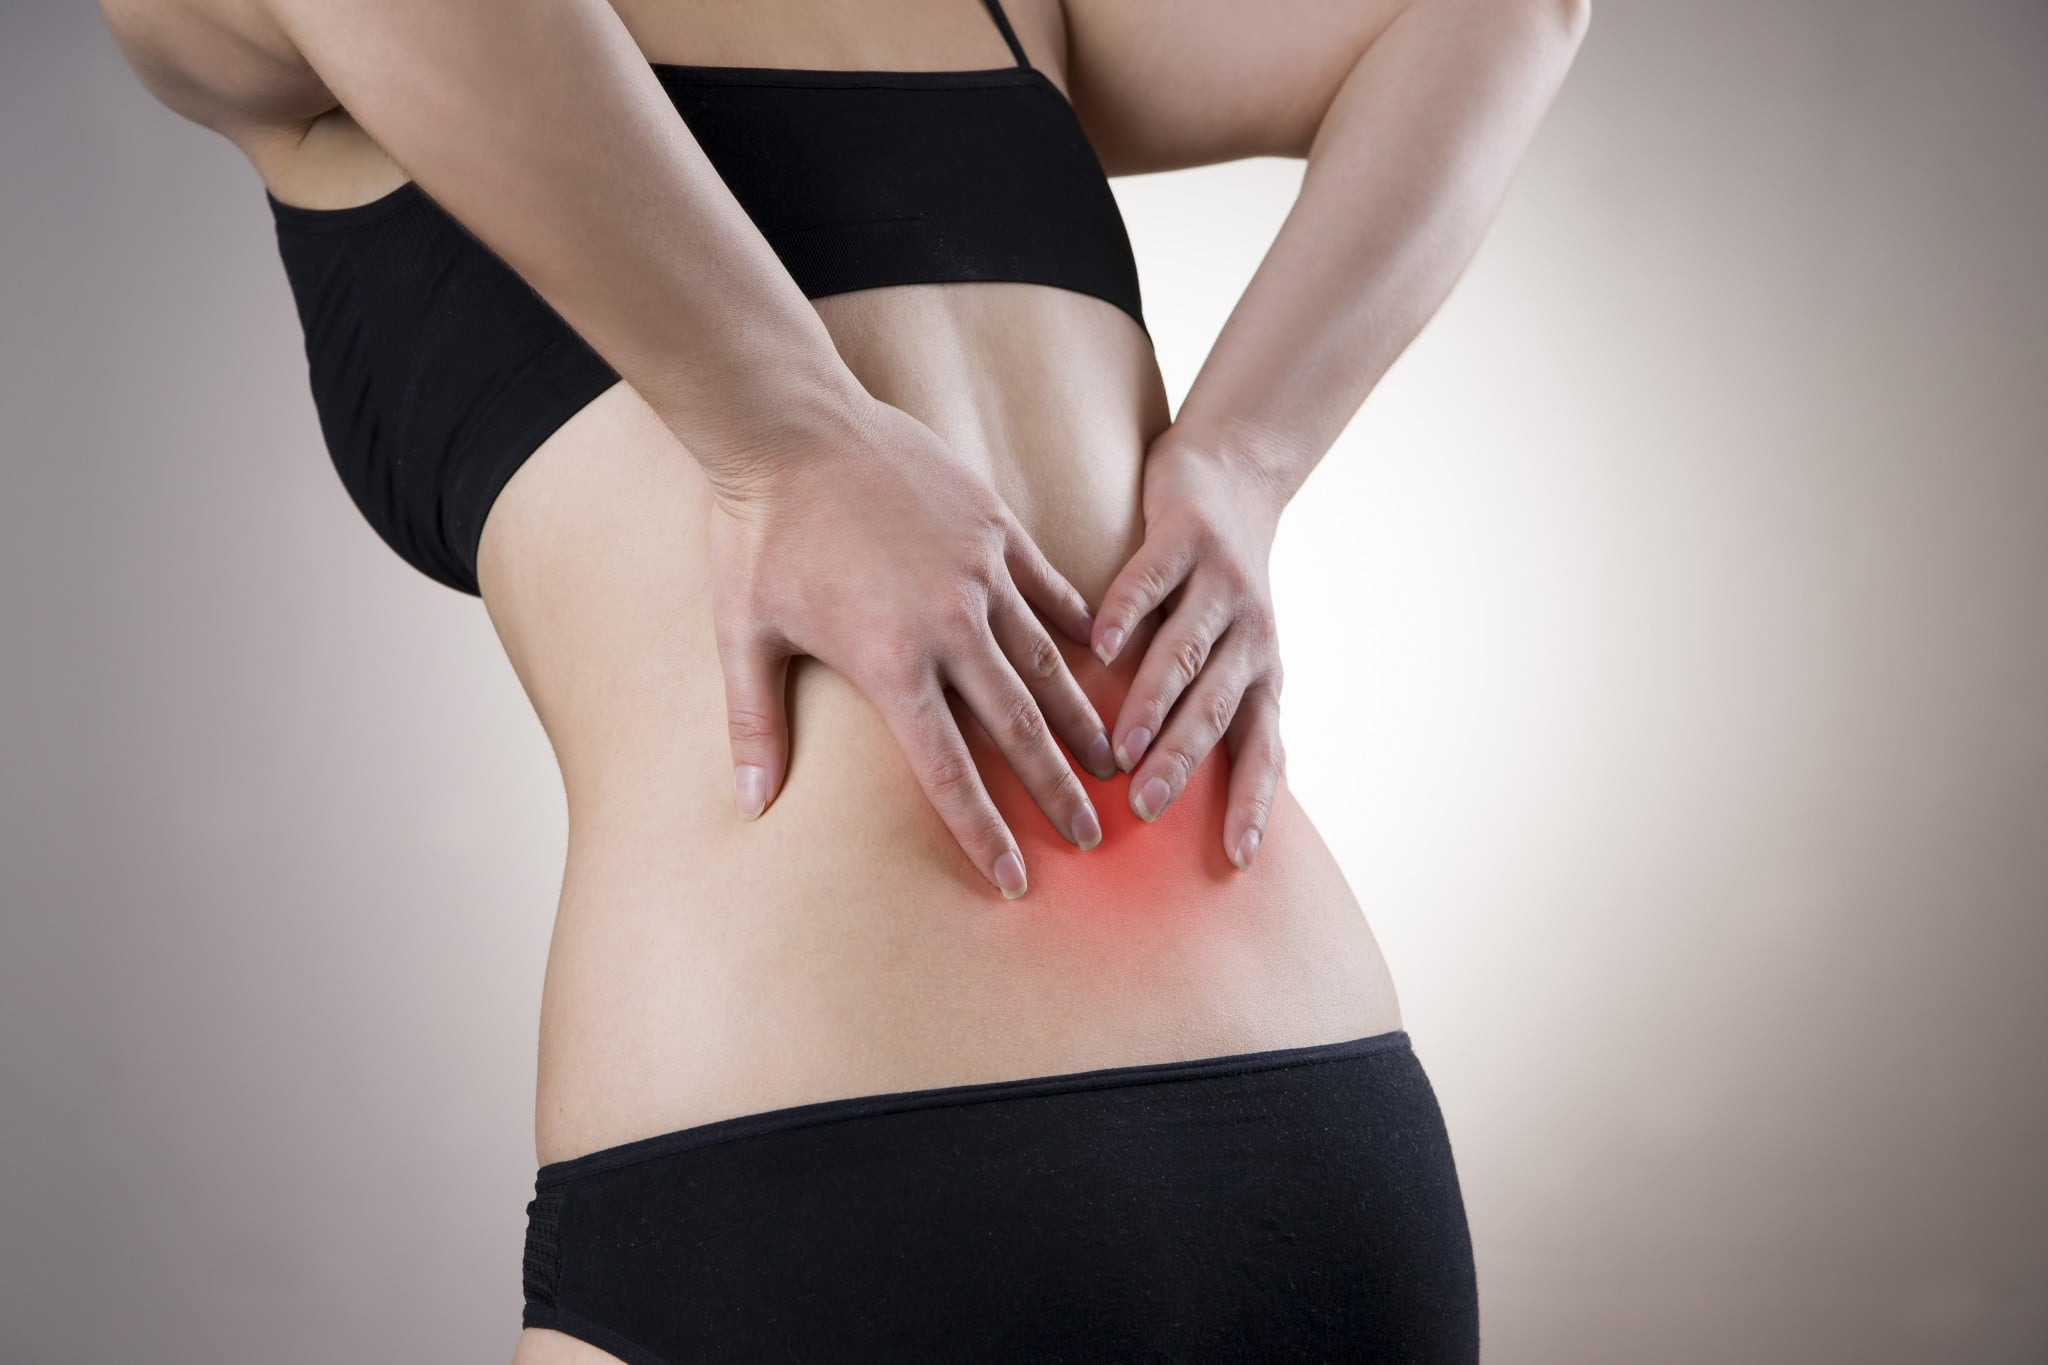 back pain: woman rubs lower back